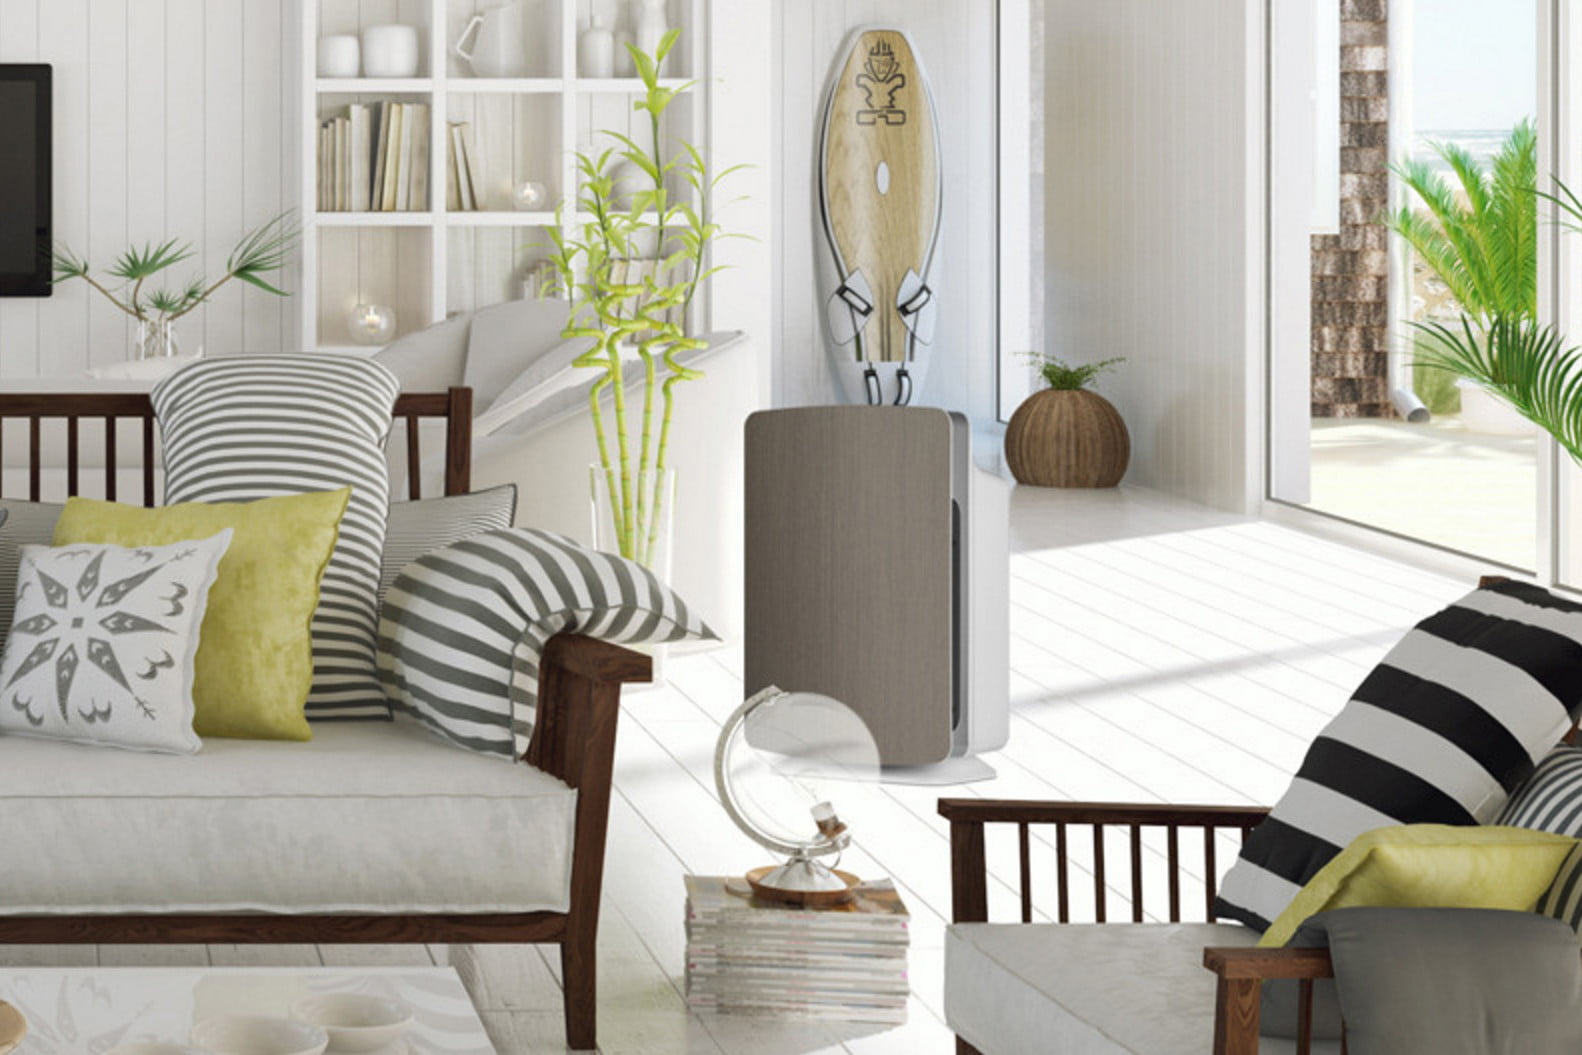 Pleasing The Best Air Purifiers For People With Allergies Digital Home Interior And Landscaping Spoatsignezvosmurscom